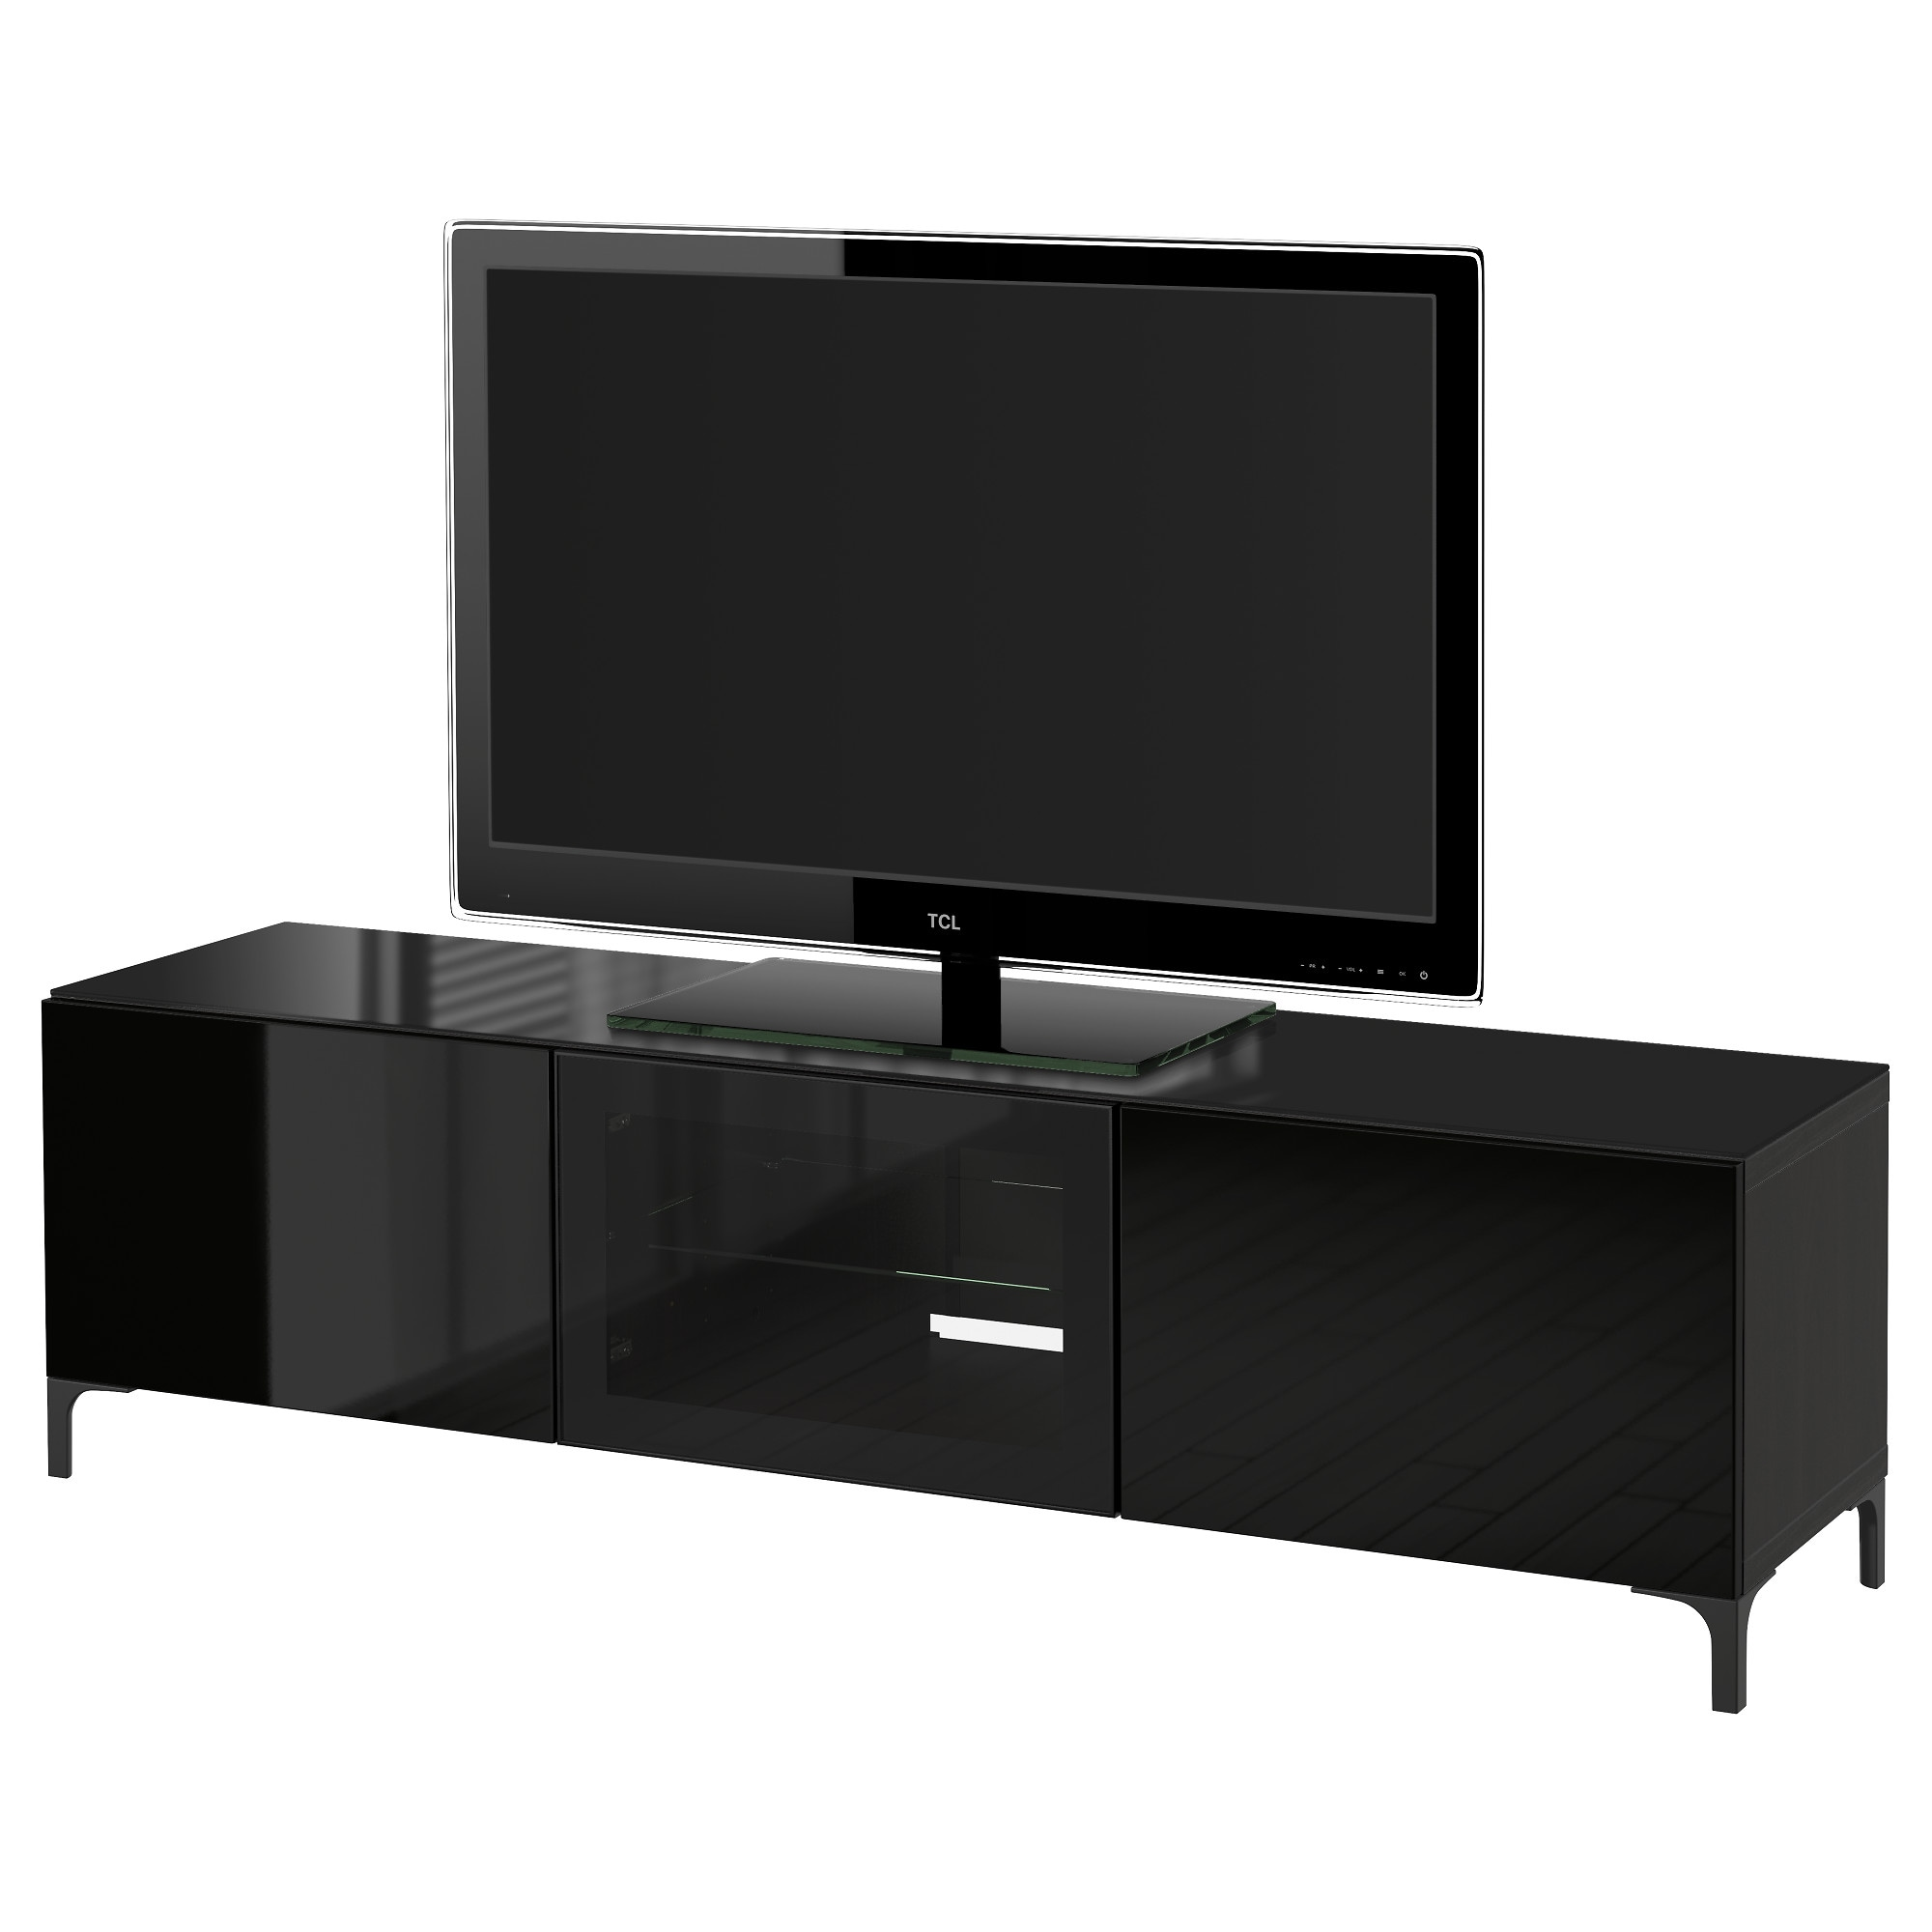 TV Stands & Entertainment Centers - IKEA